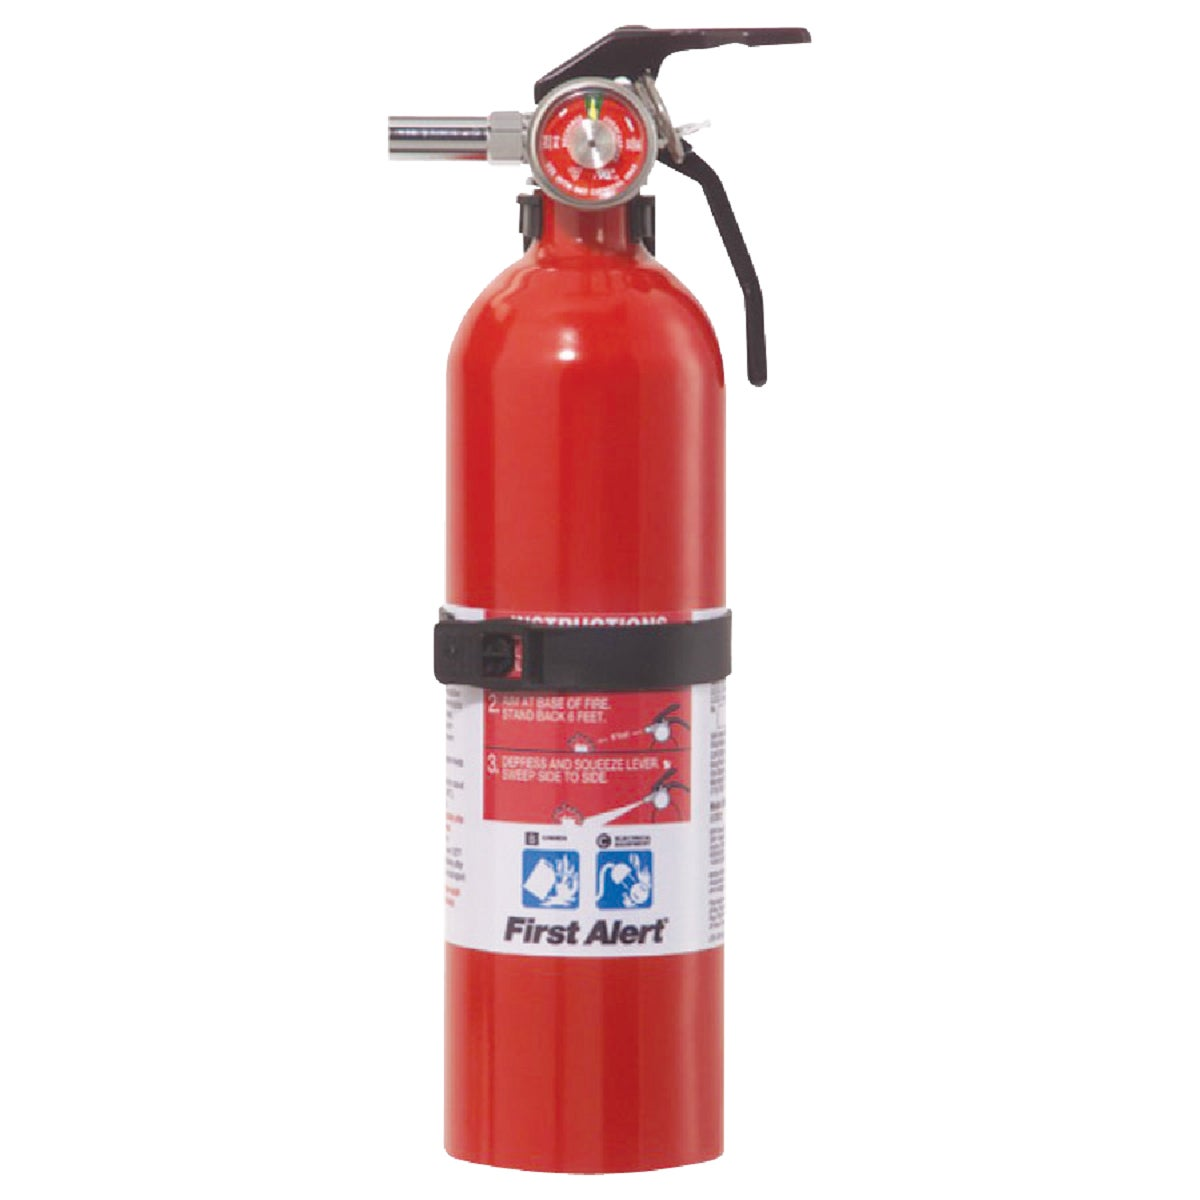 5 BC FIRE EXTINGUISHER - REC5 by First Alert  Jarden